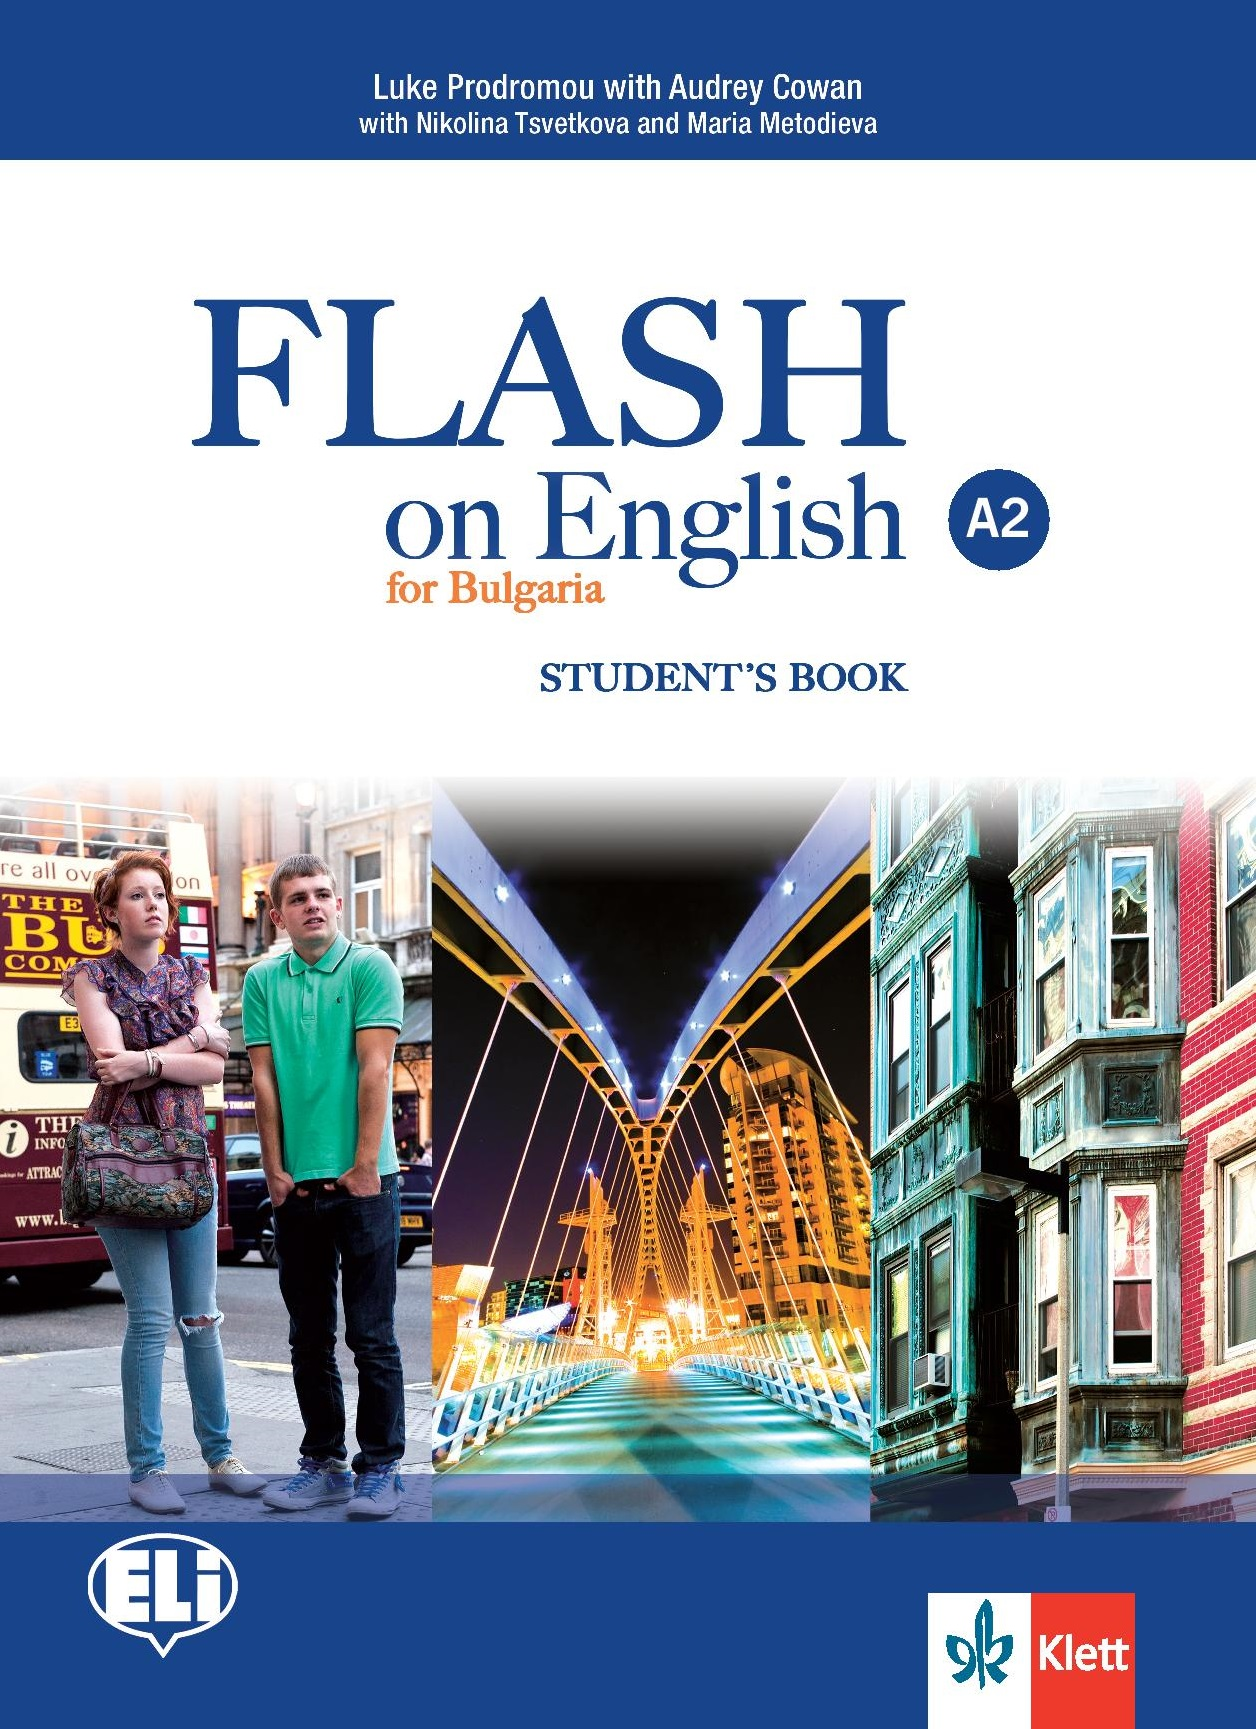 Flash on English for Bulgaria A2 Tests